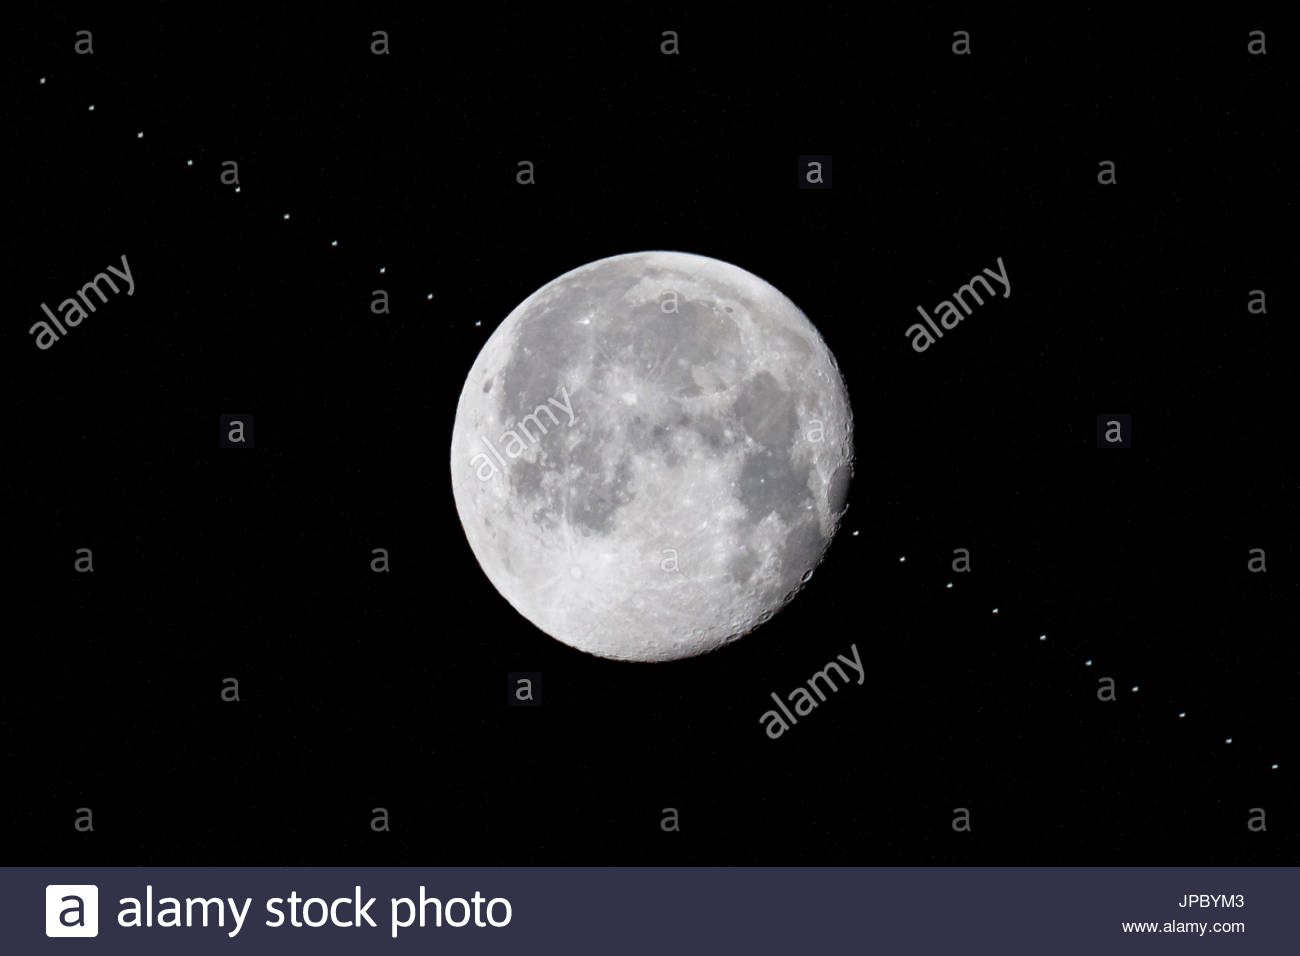 ISS International Space Station passing in front of full moon, multi-exposure image, various stages of fly-by progress, satellite orbit flight path - Stock Image